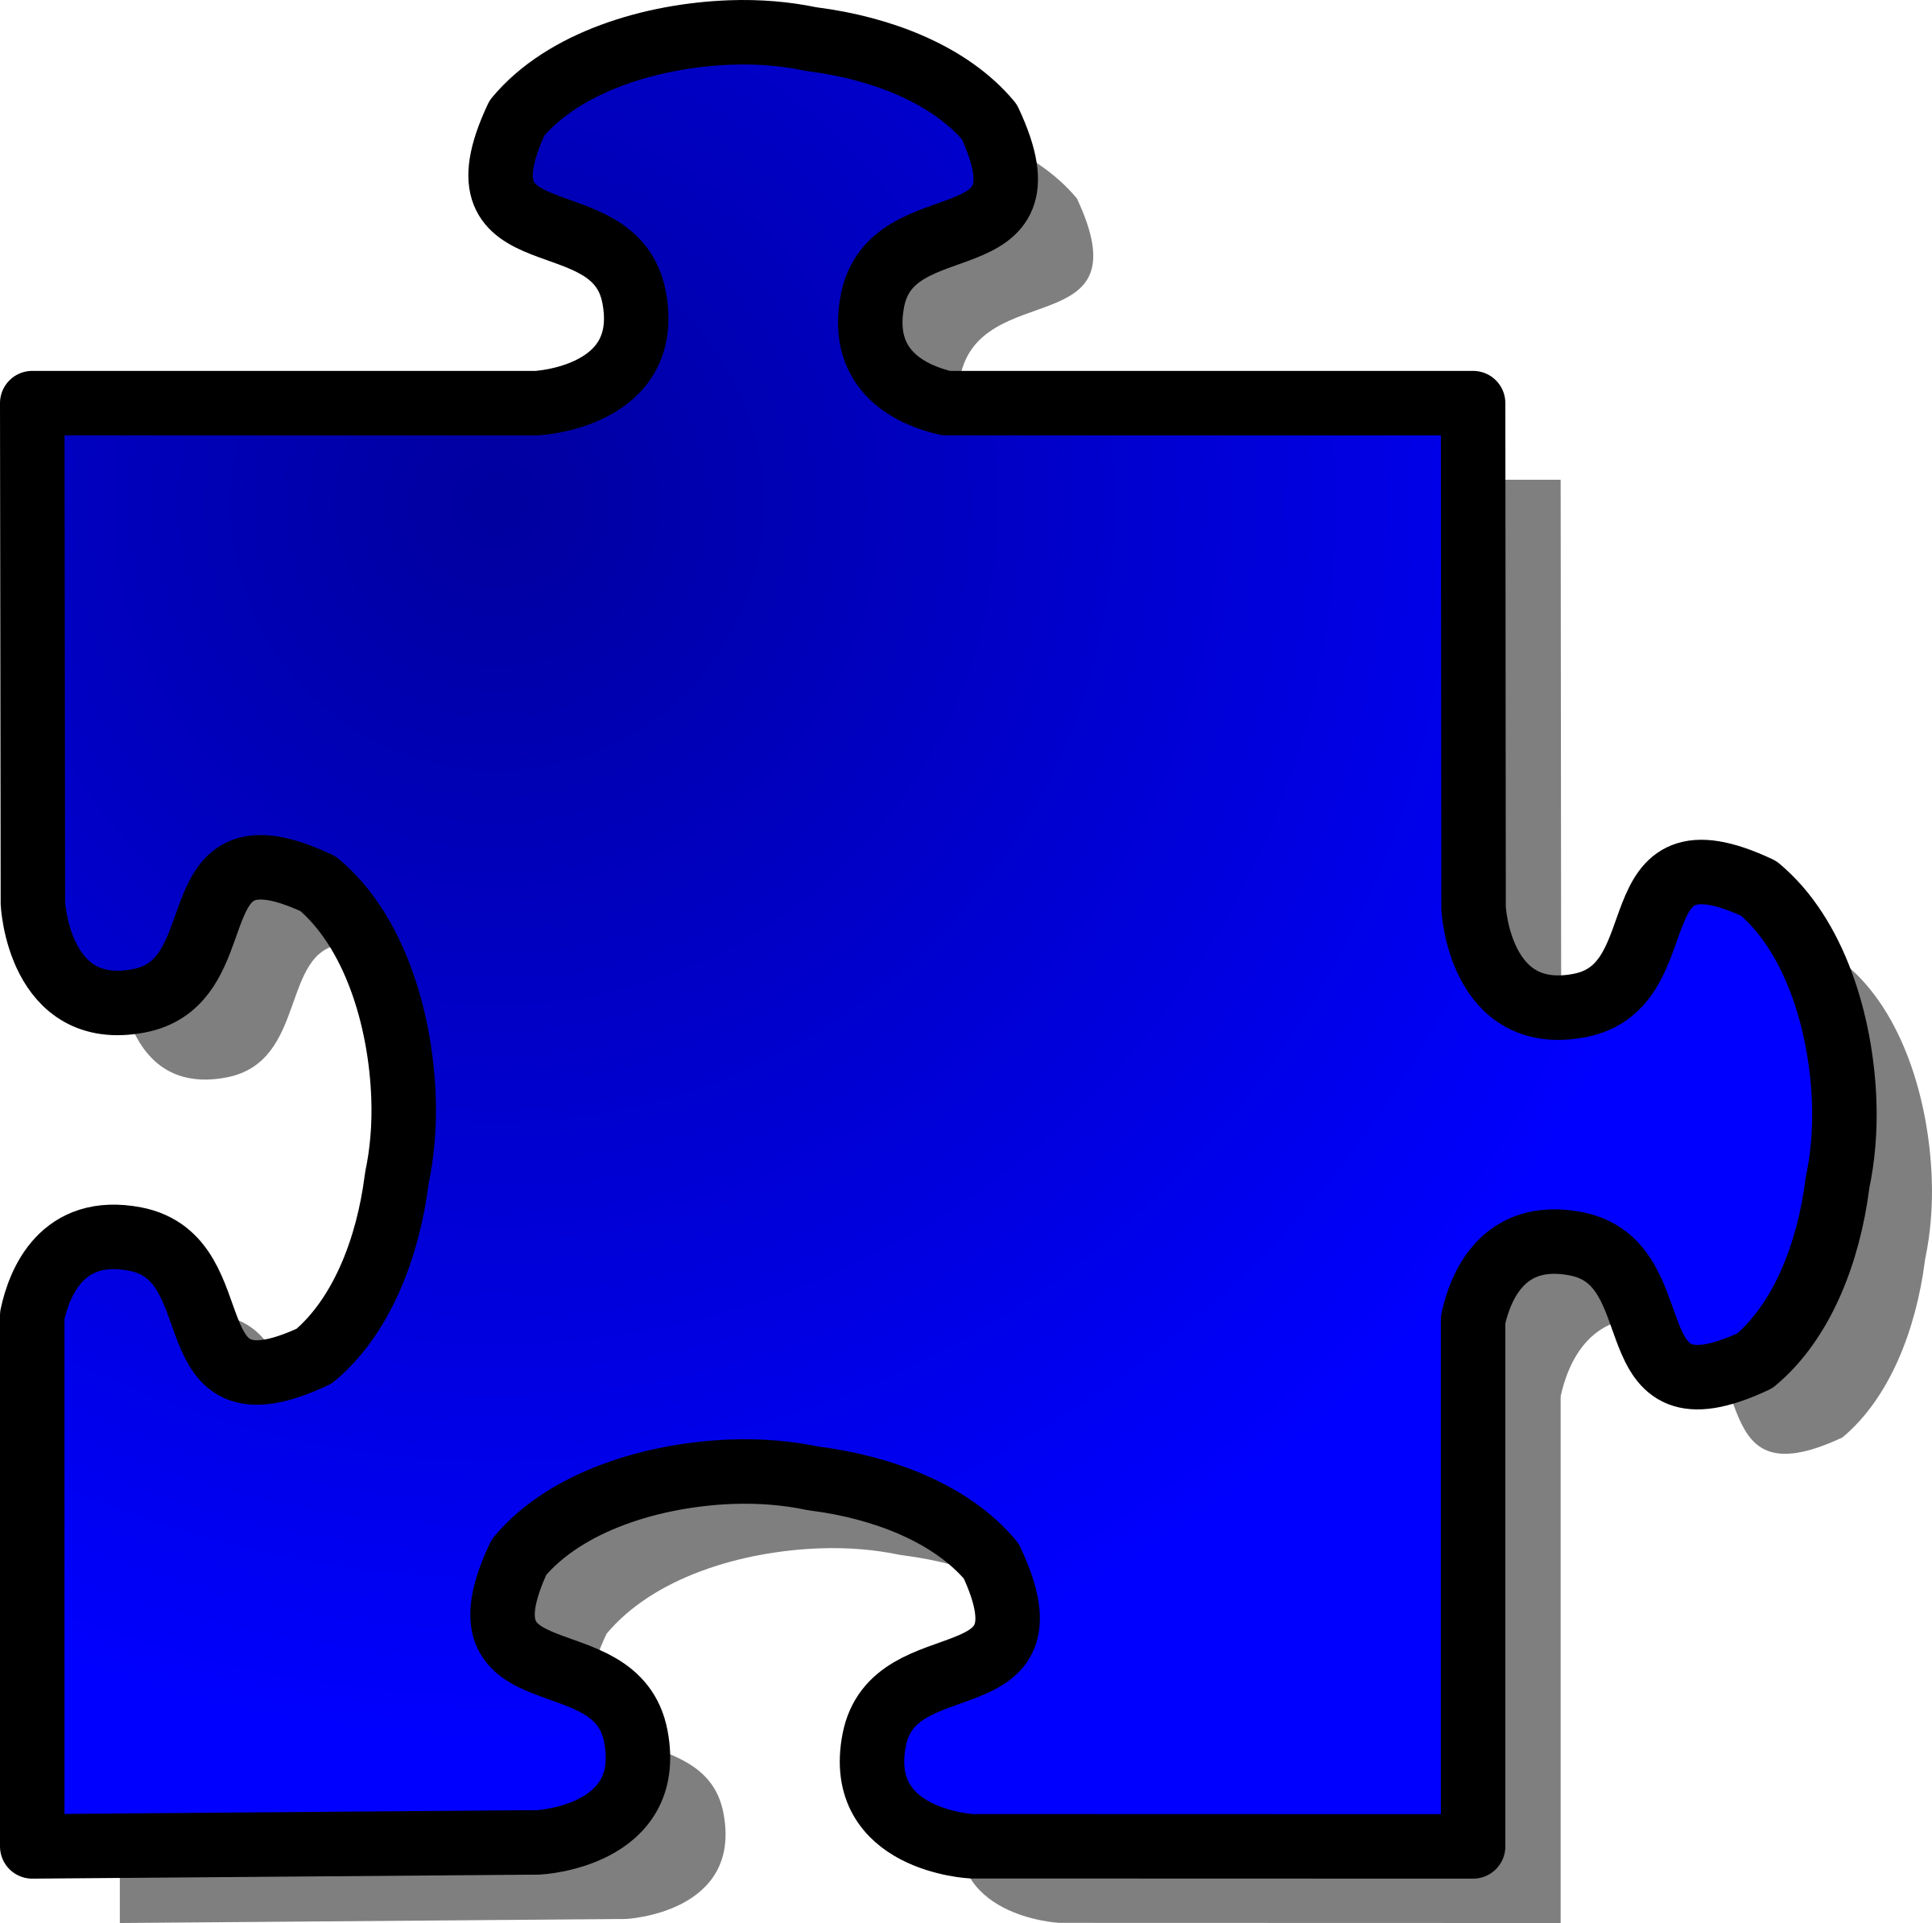 Blue Jigsaw piece 09 by nicubunu